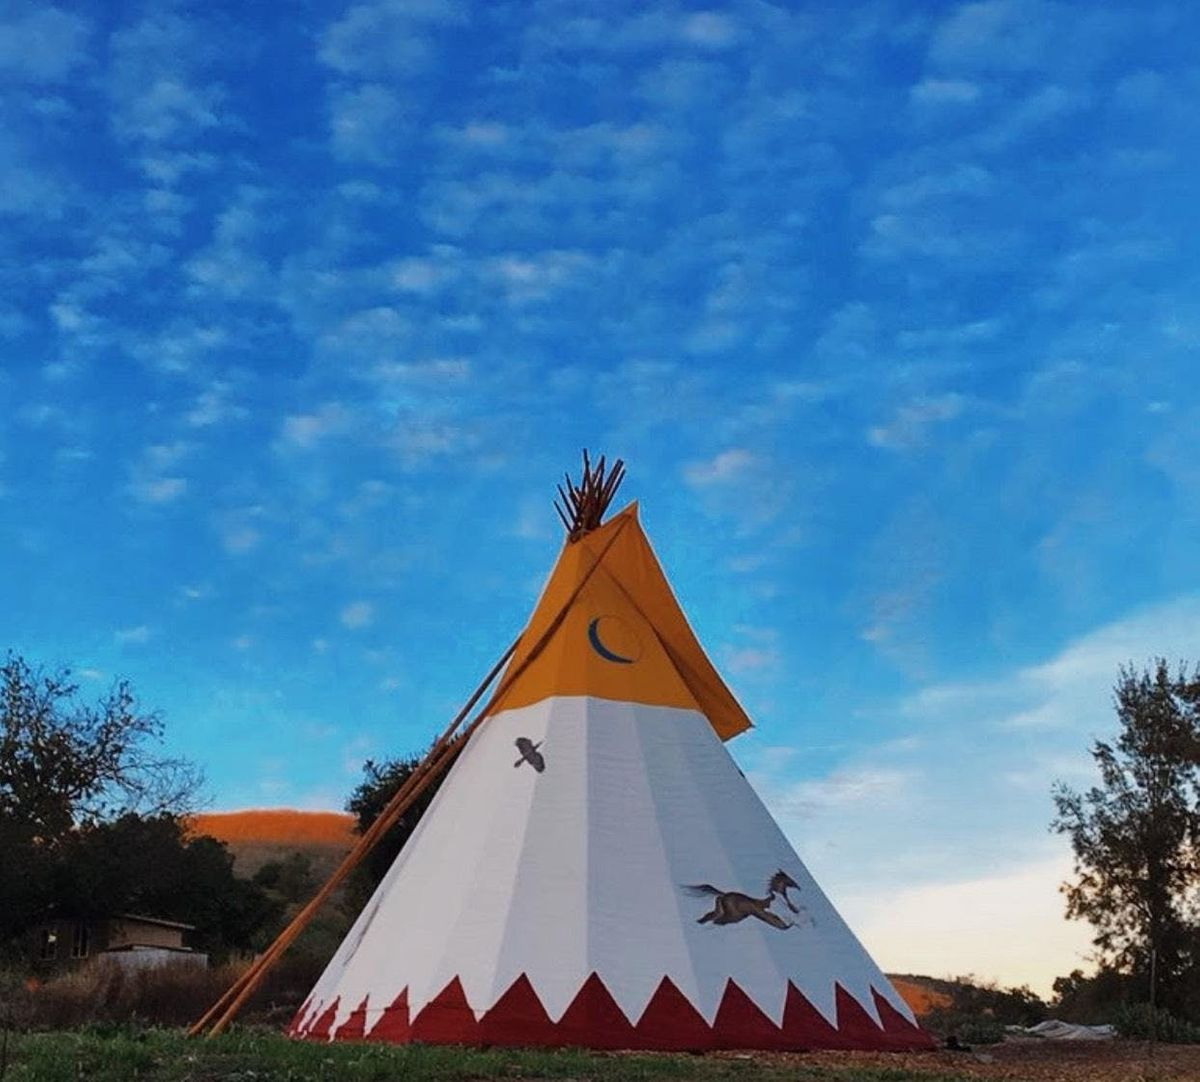 Guided Lucid Dreaming Meditation in a Tipi - Private Ranch in Old